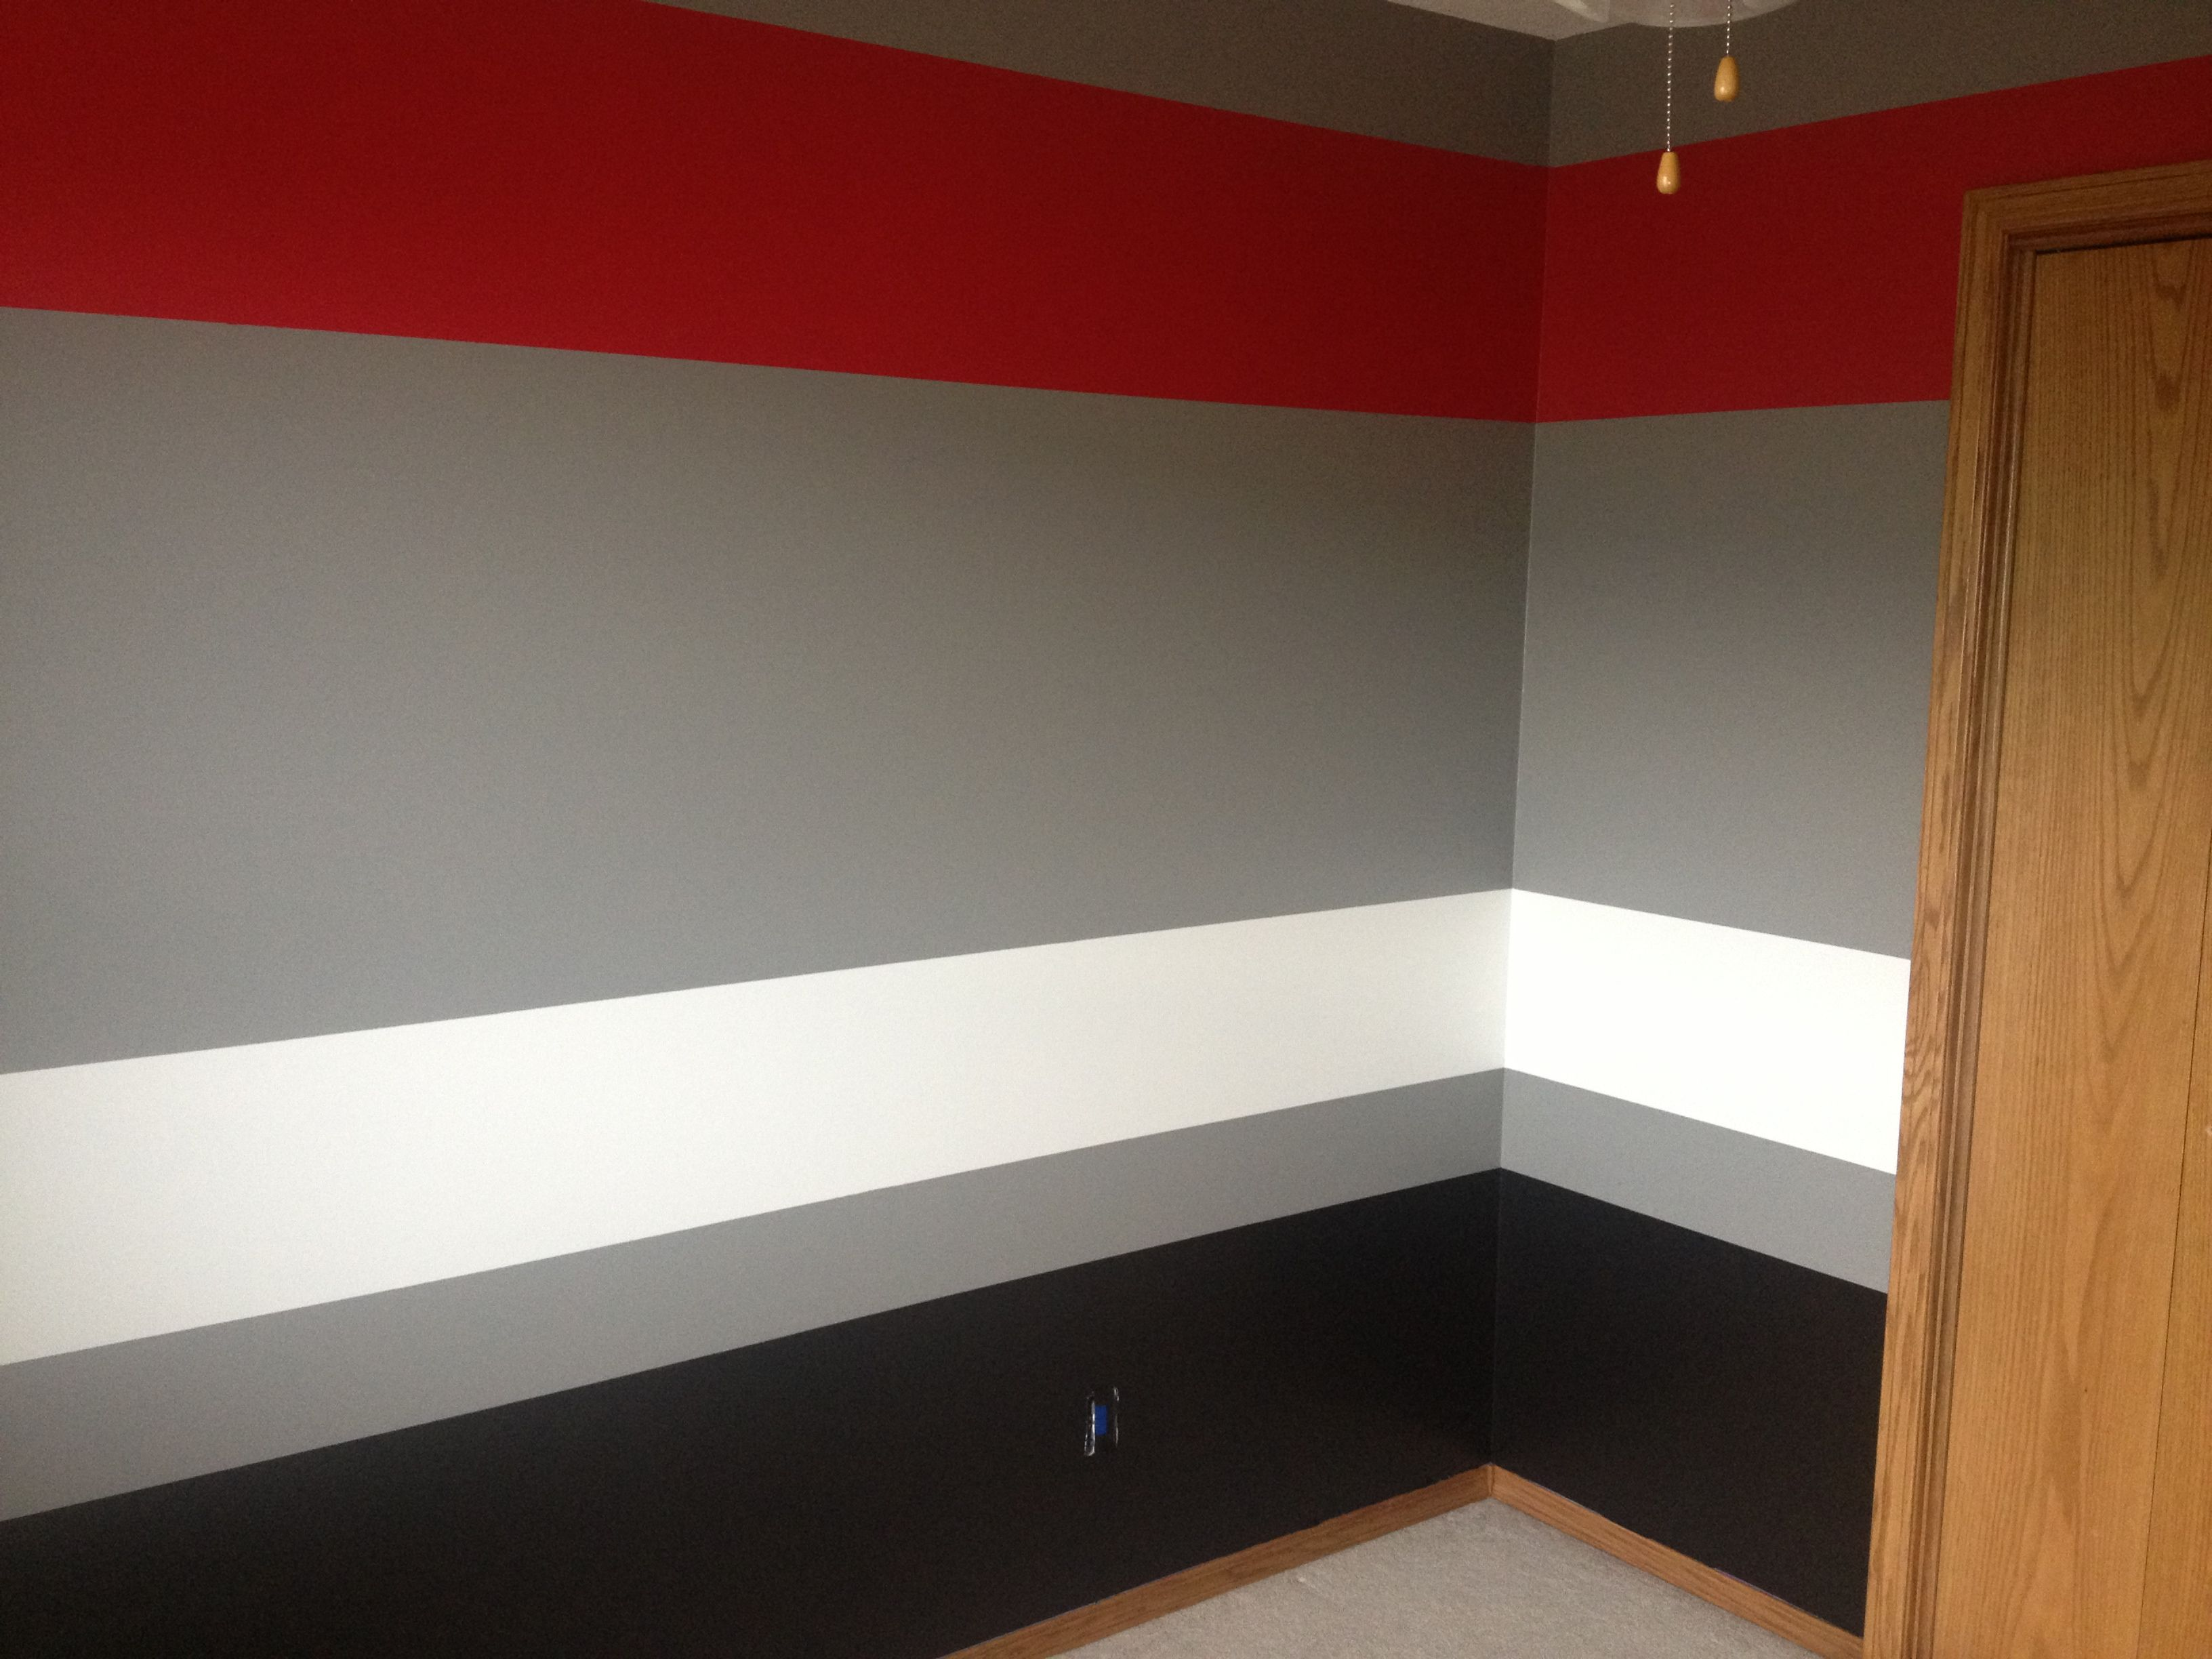 Painted Room Grey Red White Black Rooms Pinterest Gray Room And Bedrooms